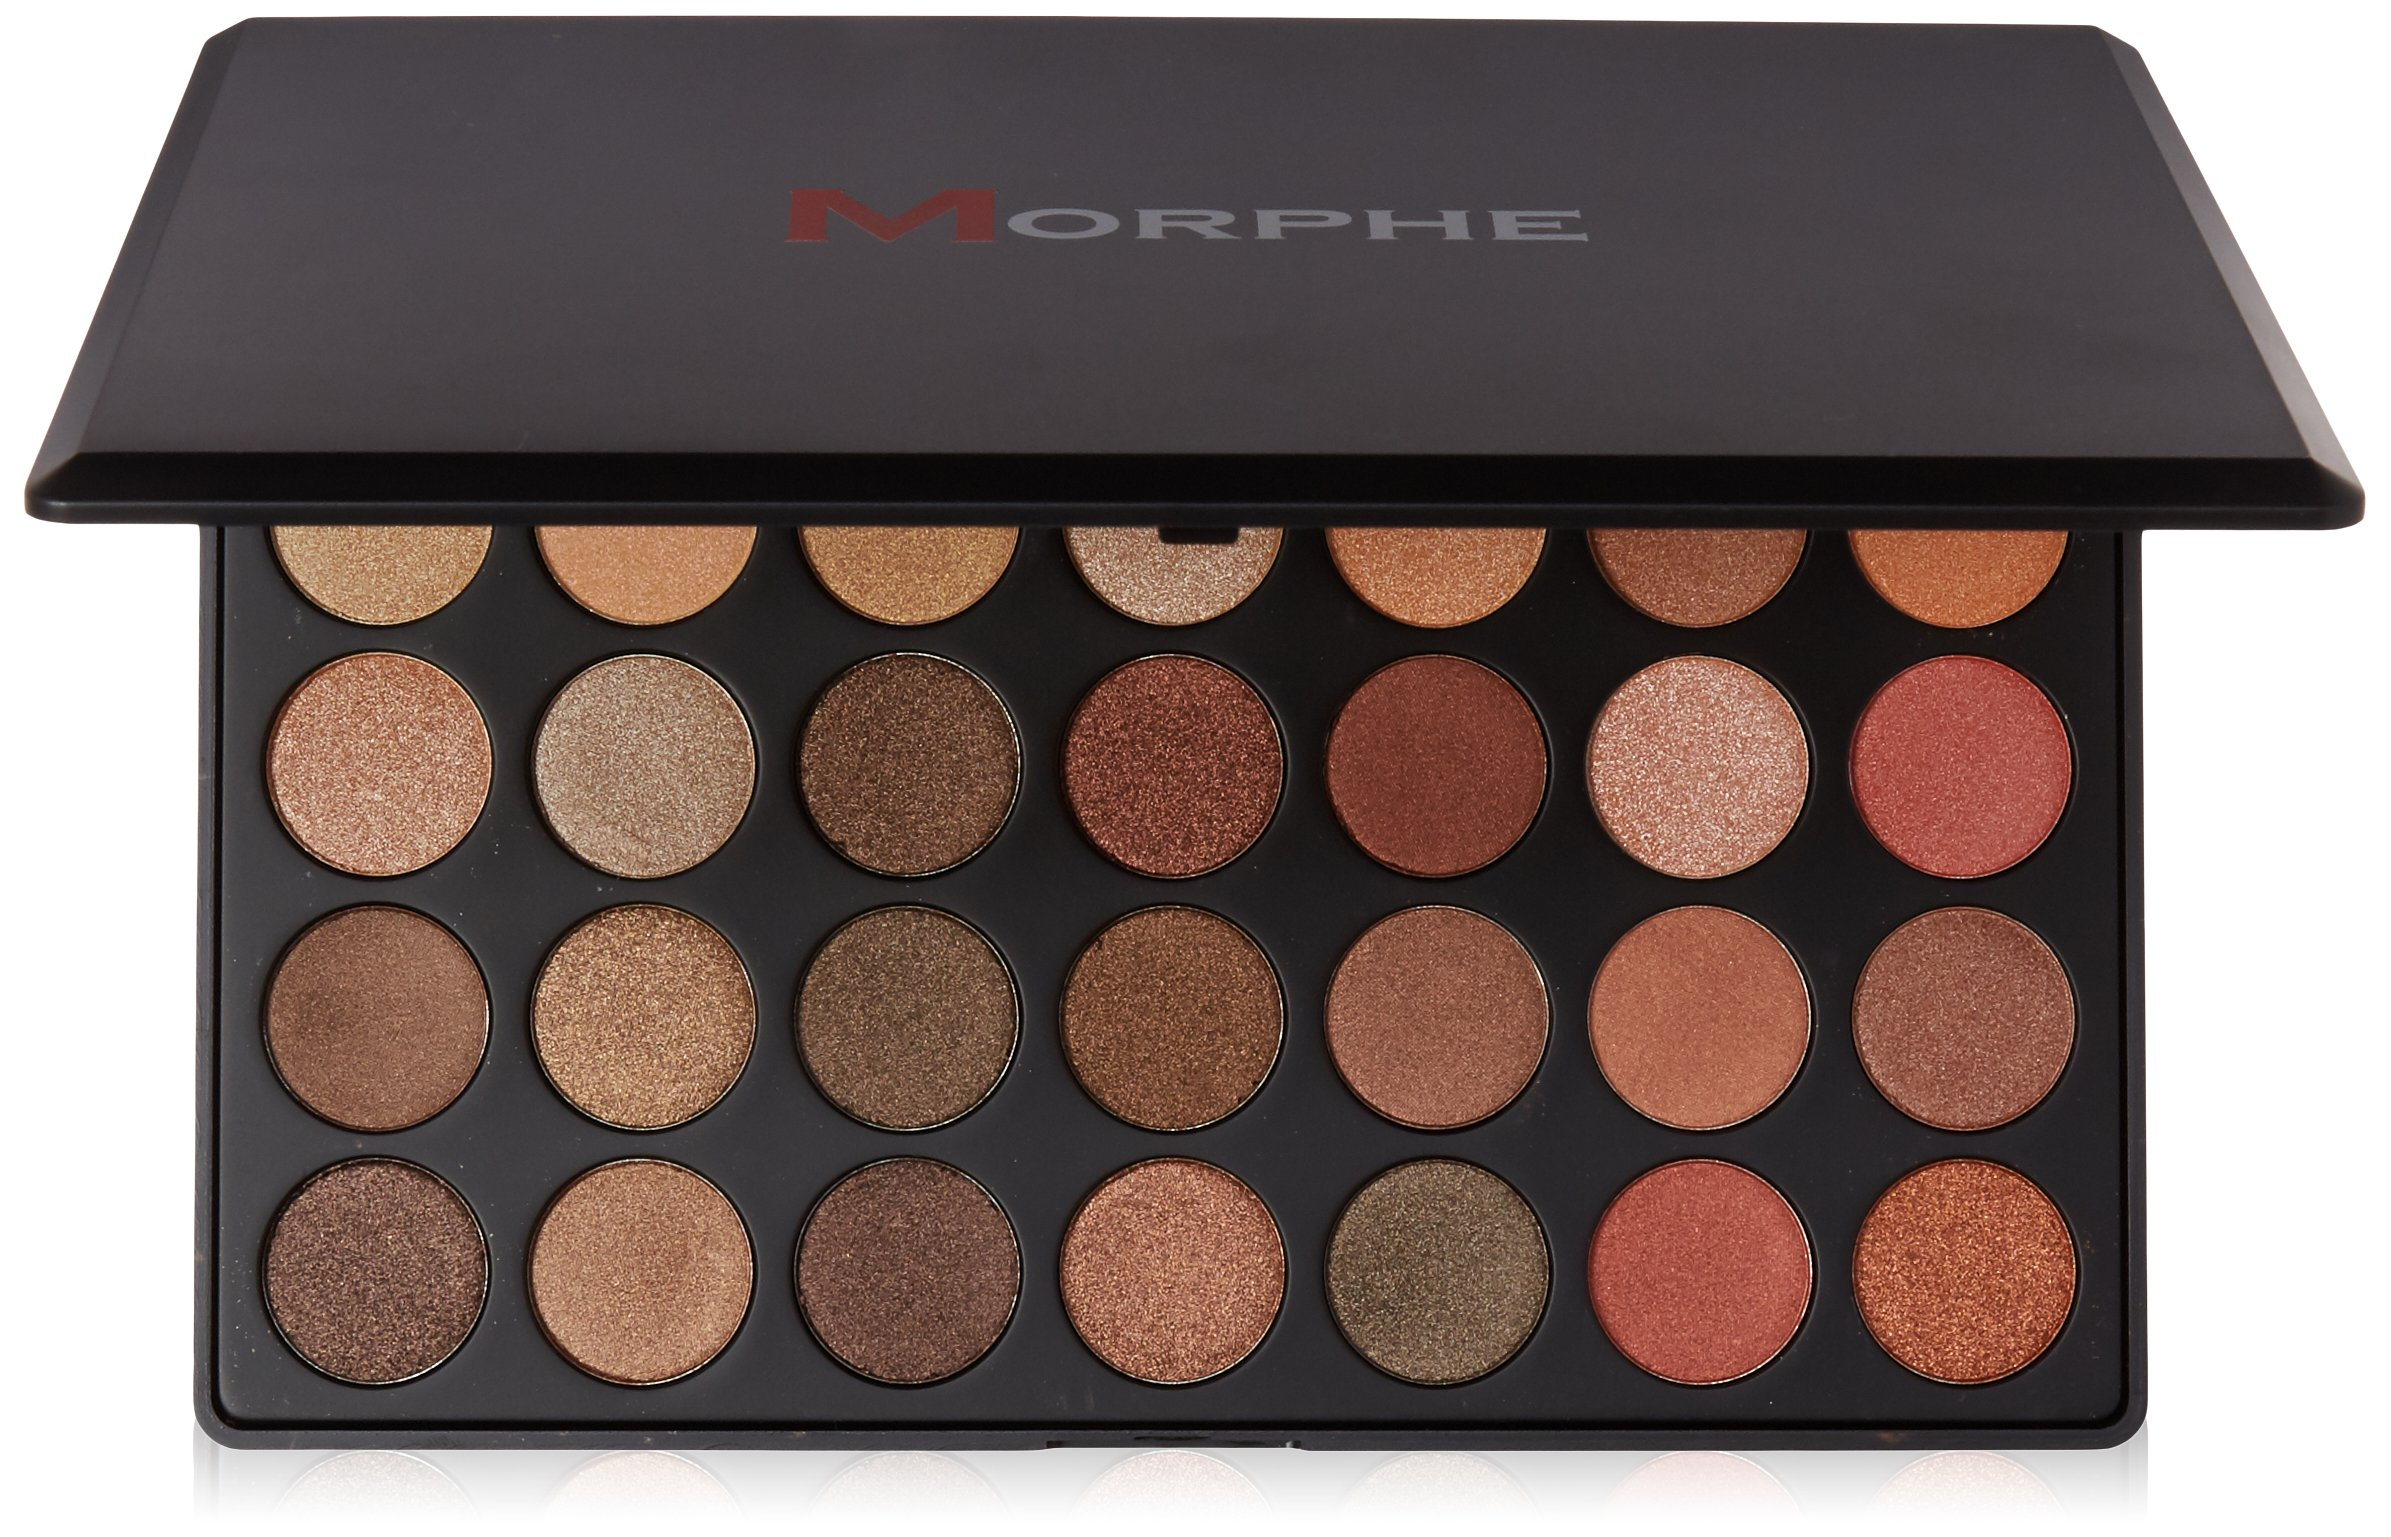 Morphe Brushes - 35OS - 35 Color Shimmer Nature Glow Eyeshadow Palette by Morphe Brushes